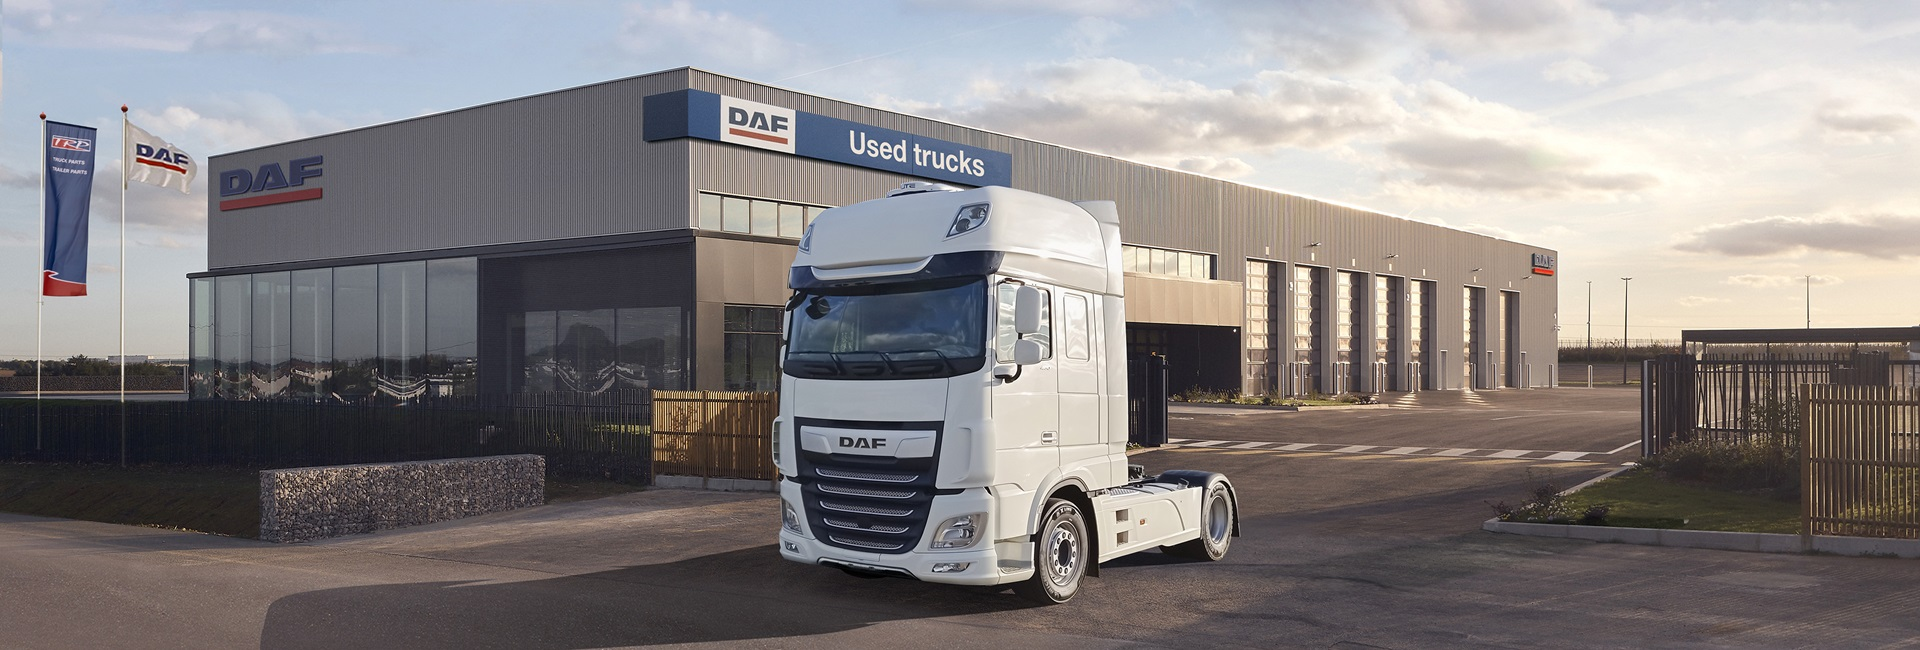 DAF-Used-Trucks-Spain-Campaign-Main-image